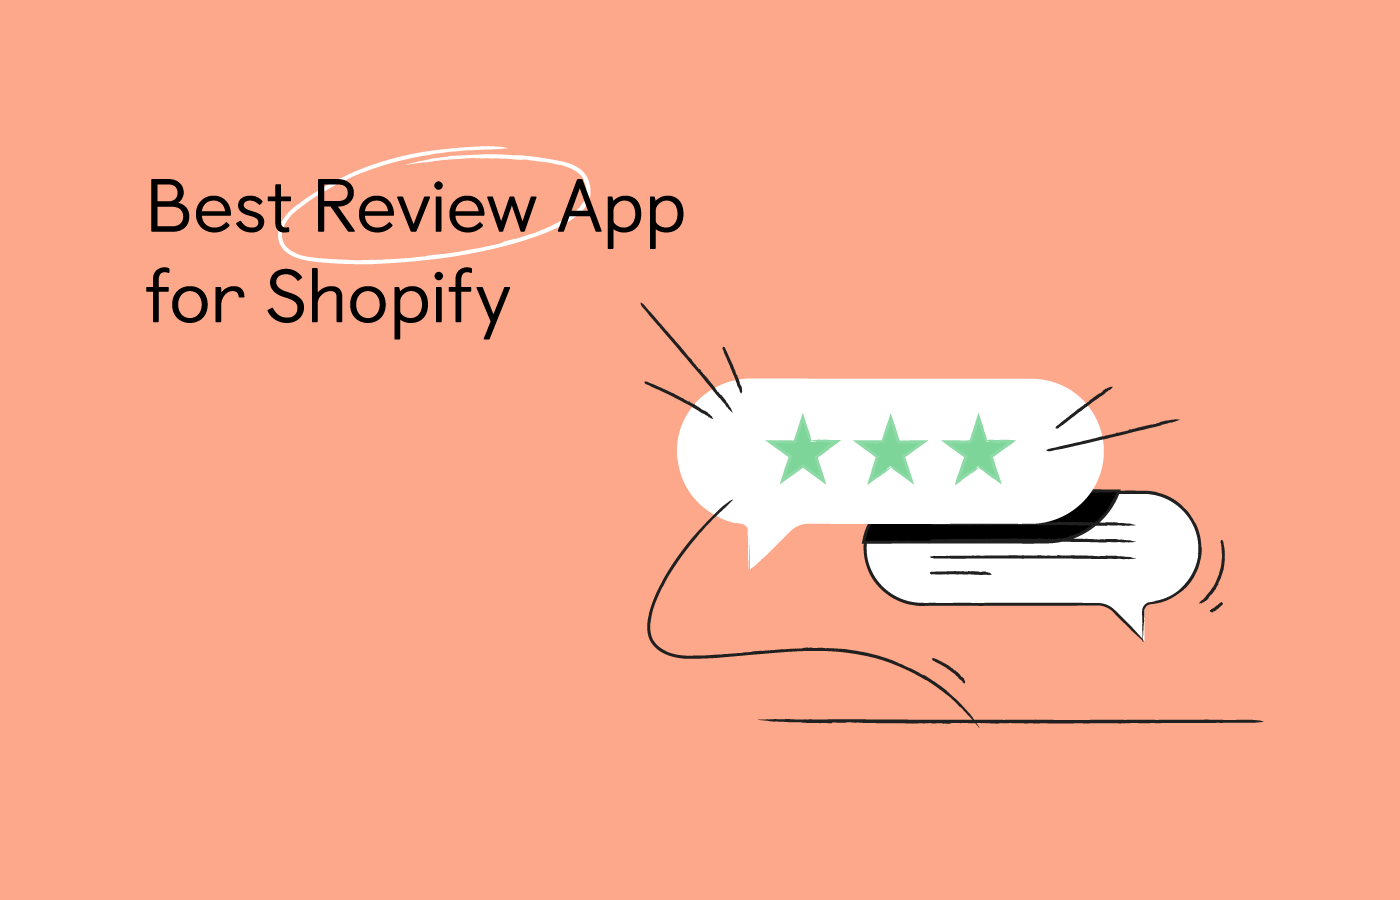 Best Review App for Shopify: 10+ Top-Rated Options [Updated 2021]